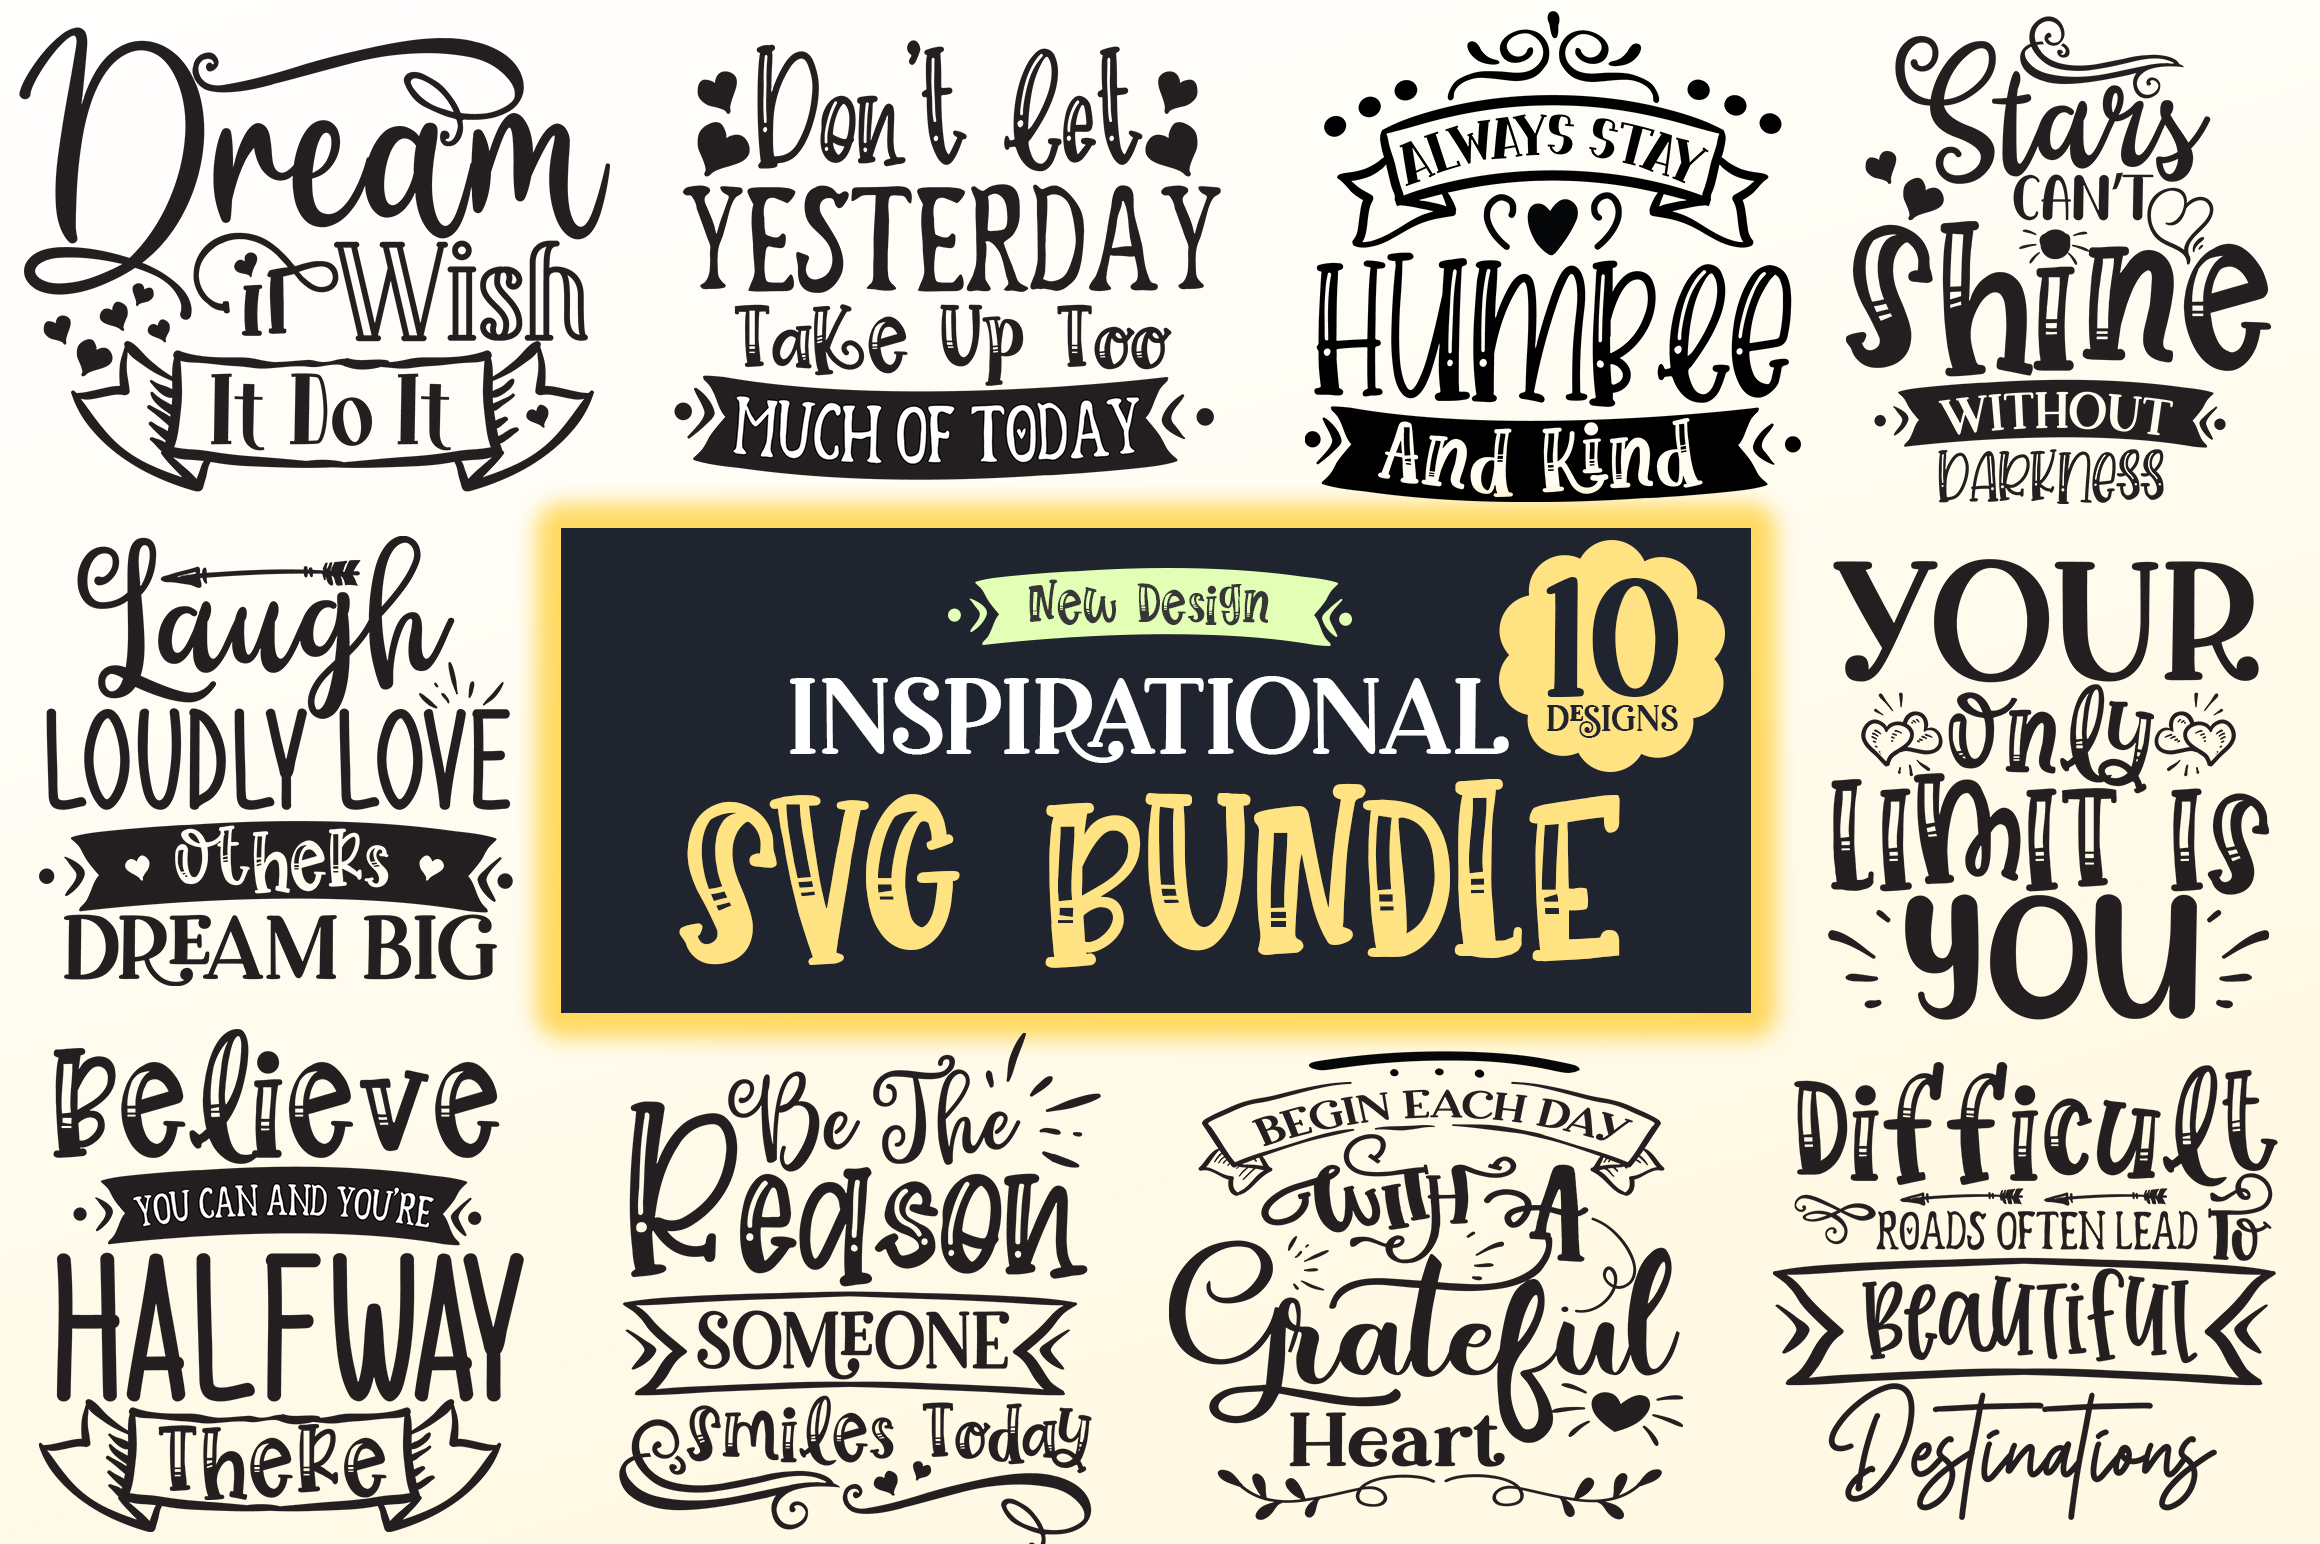 Download Free Inspirational Design Bundle Graphic By Designfarm Creative Fabrica for Cricut Explore, Silhouette and other cutting machines.